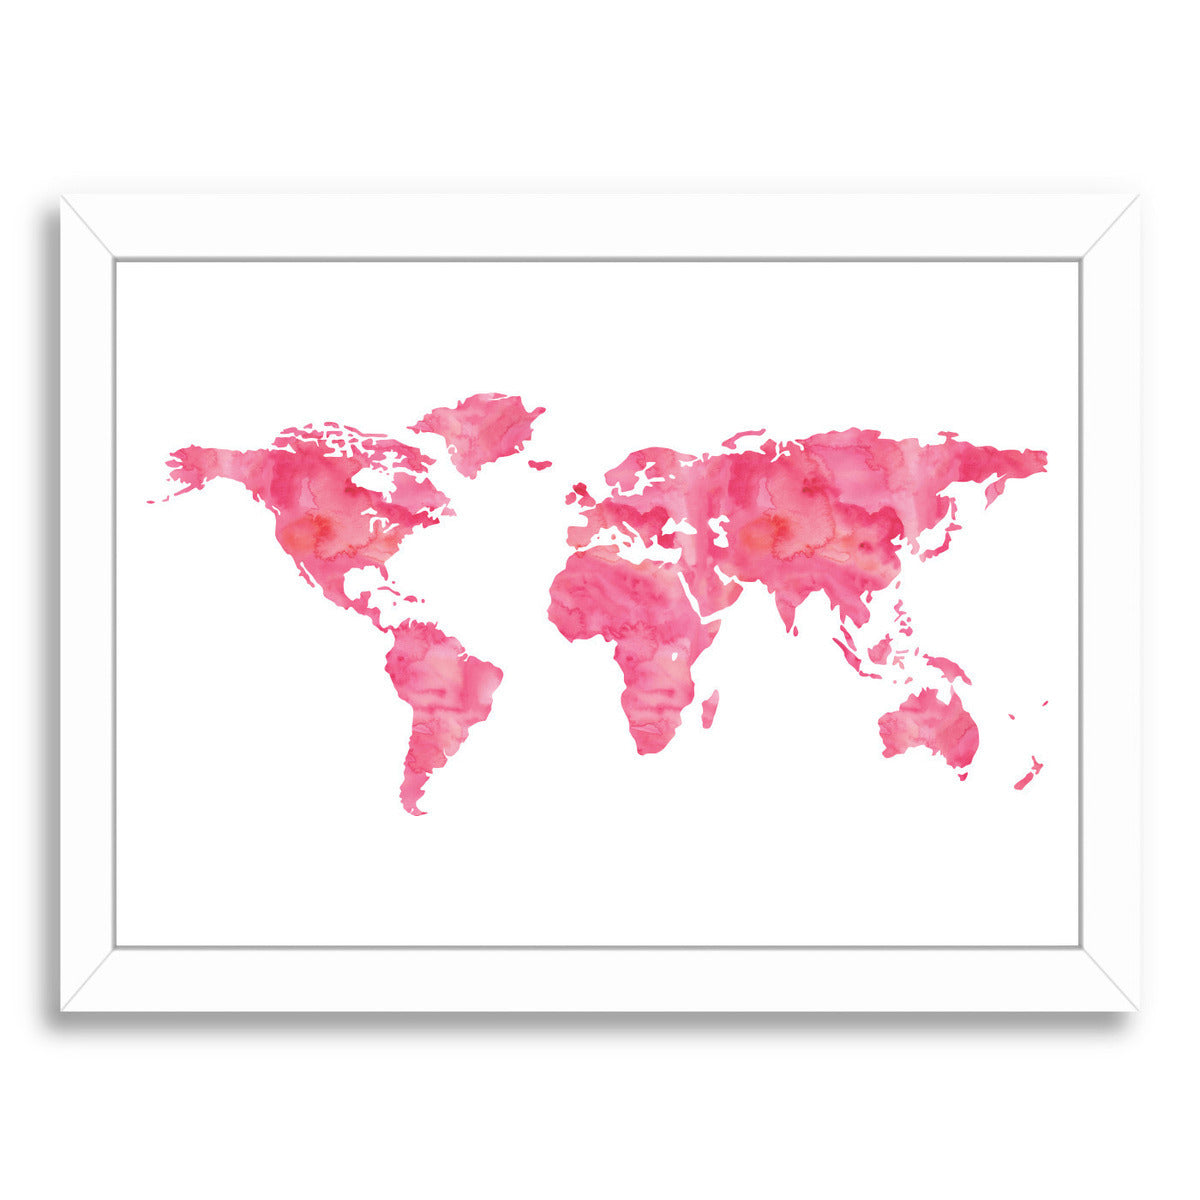 World Map Watercolor Pink by Amy Brinkman Framed Print - Americanflat